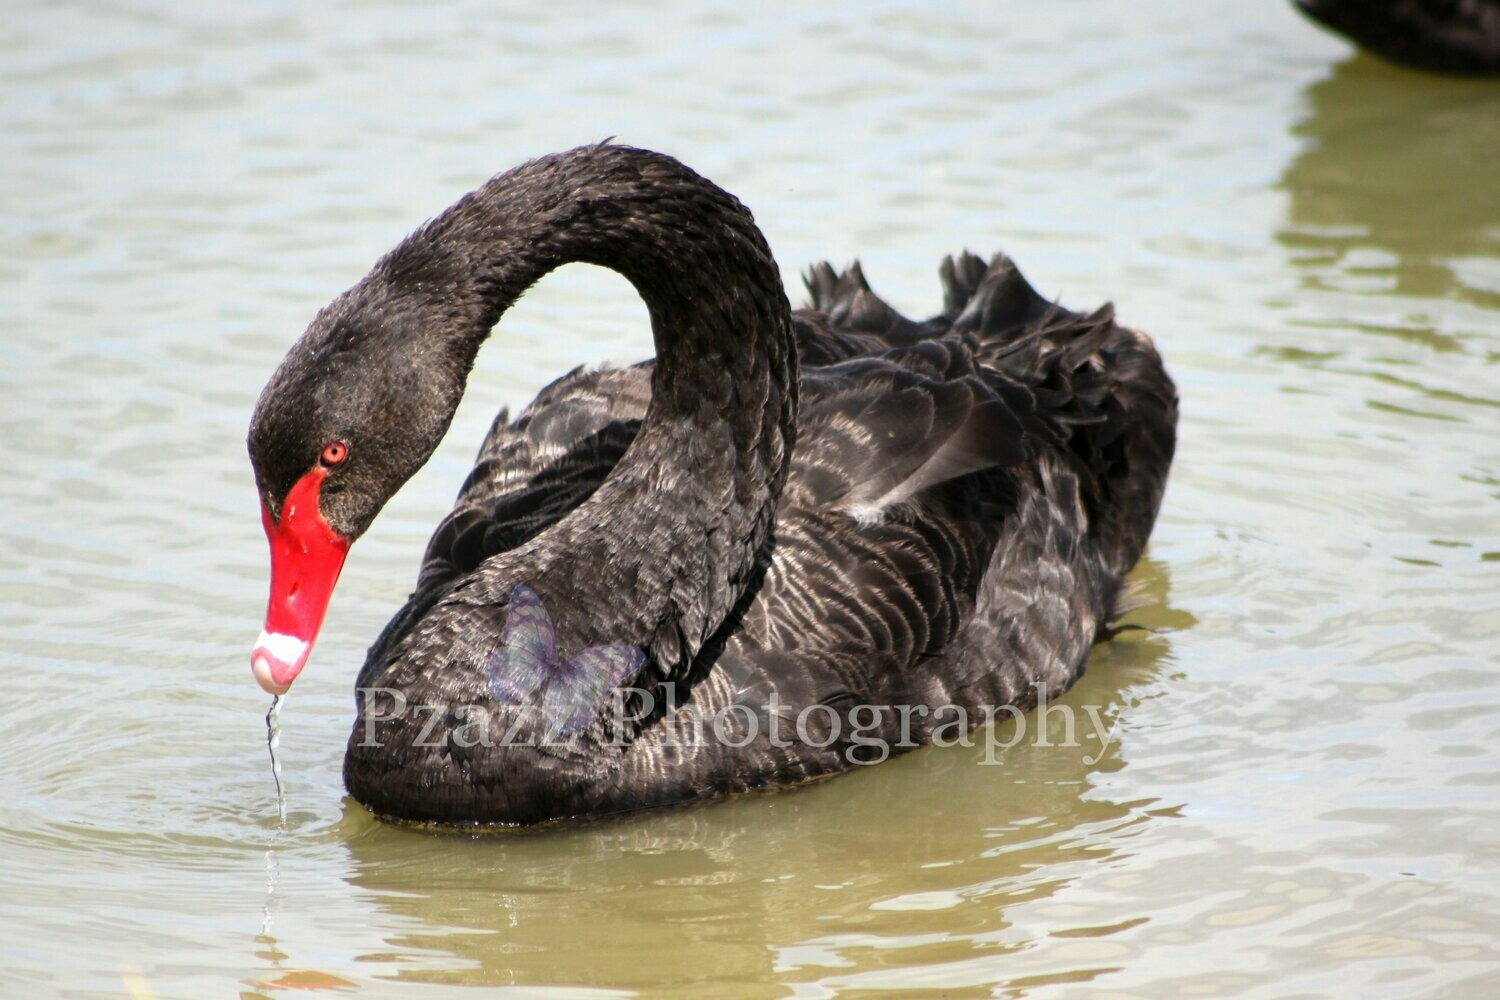 Pzazz Photography - Swan - Full Drill Diamond Painting - Specially ordered for you. Delivery is approximately 4 - 6 weeks.